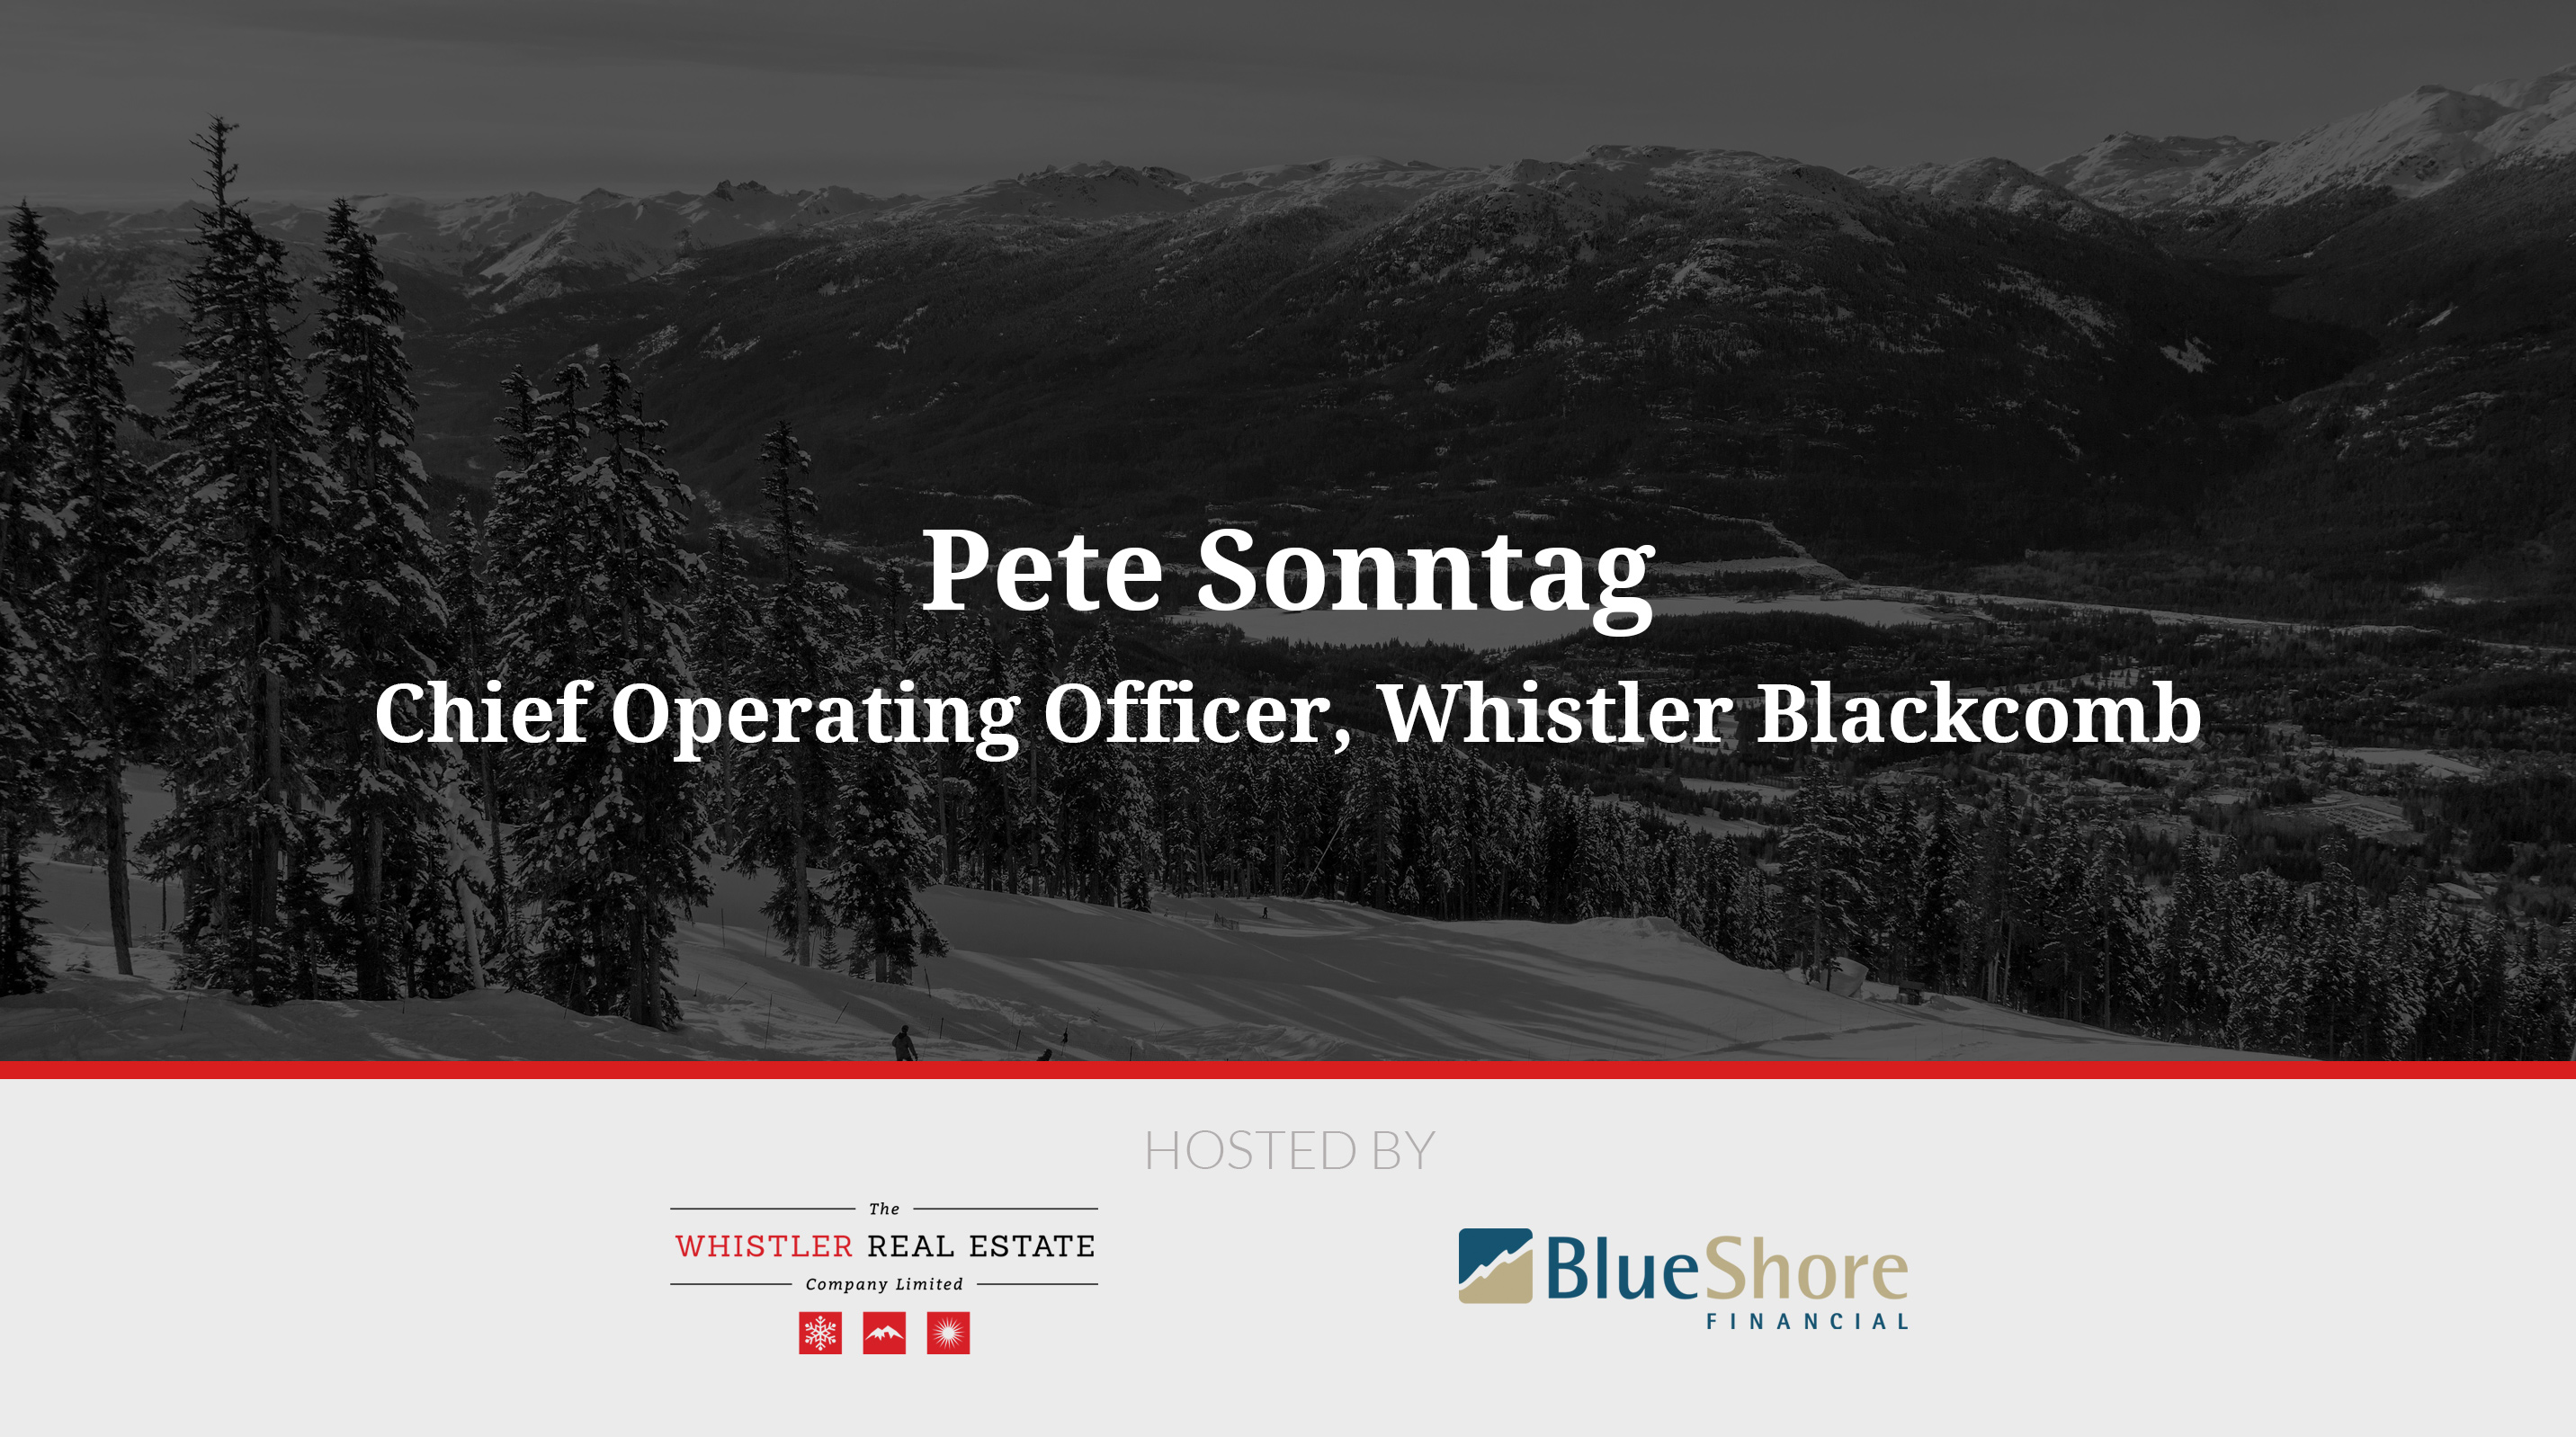 Pete Sonntag, Whistler Blackcomb